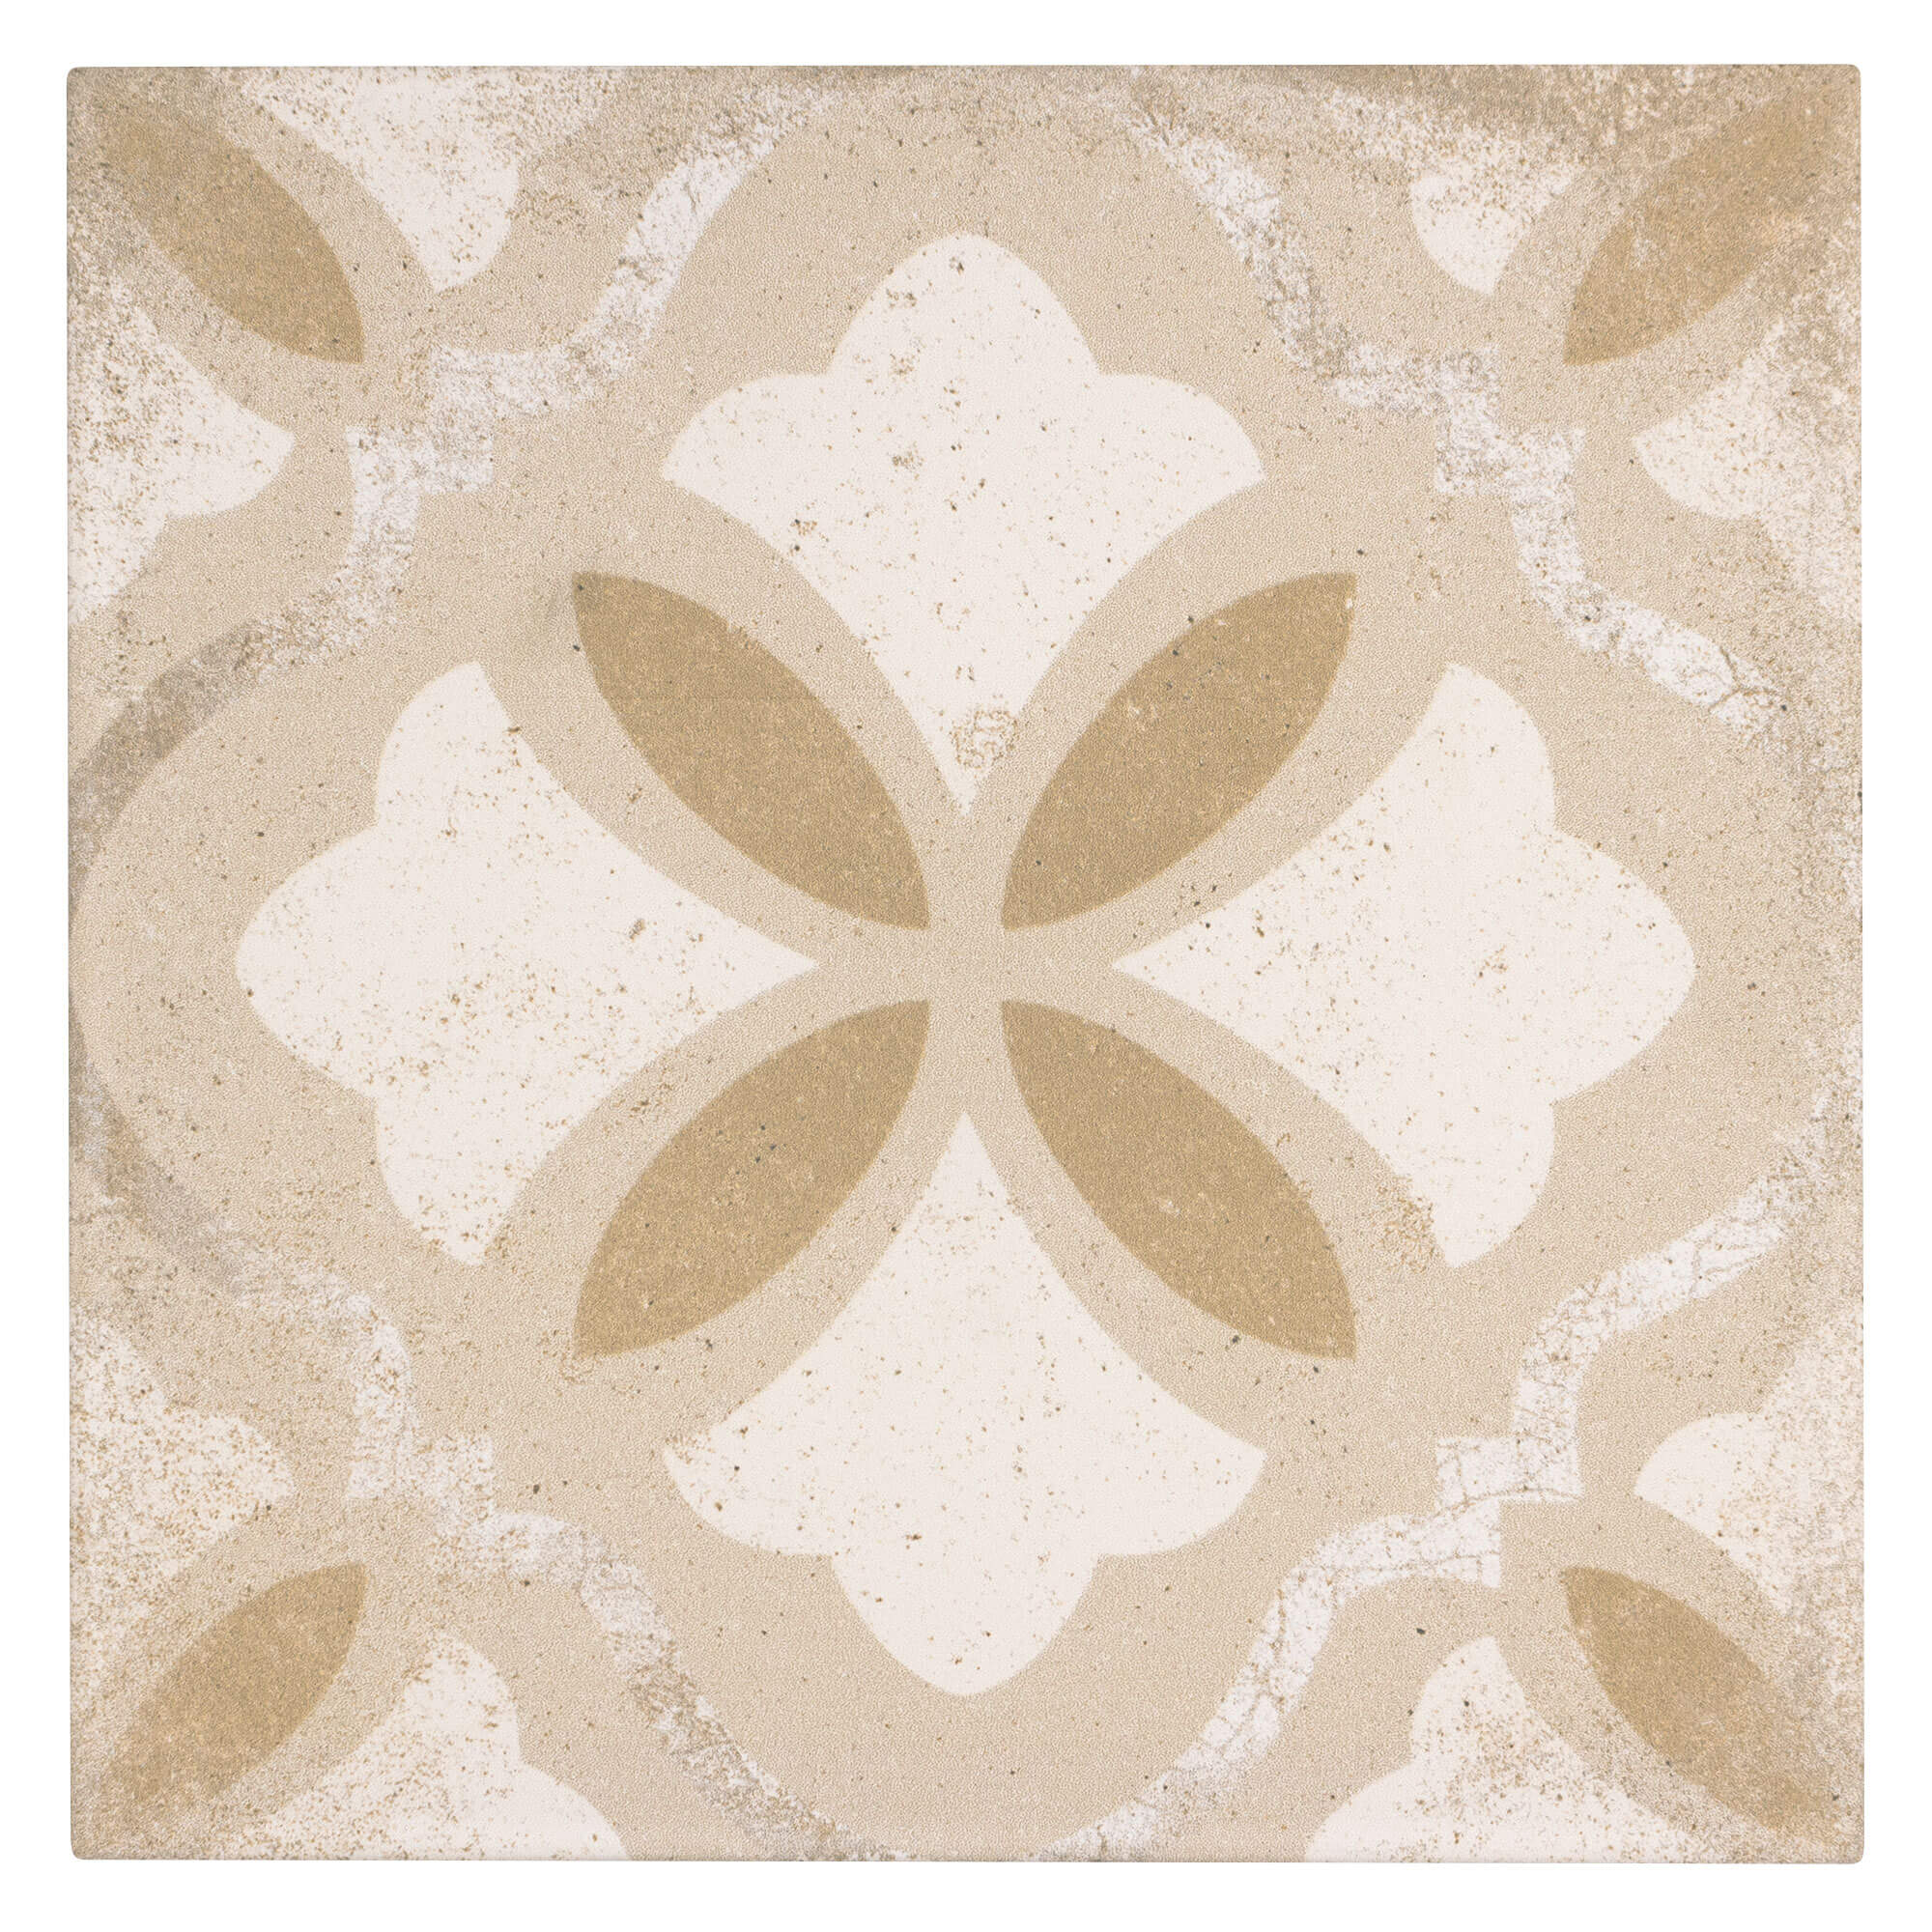 Charisma Barcelona Anthology 6x6 Porcelain Tile